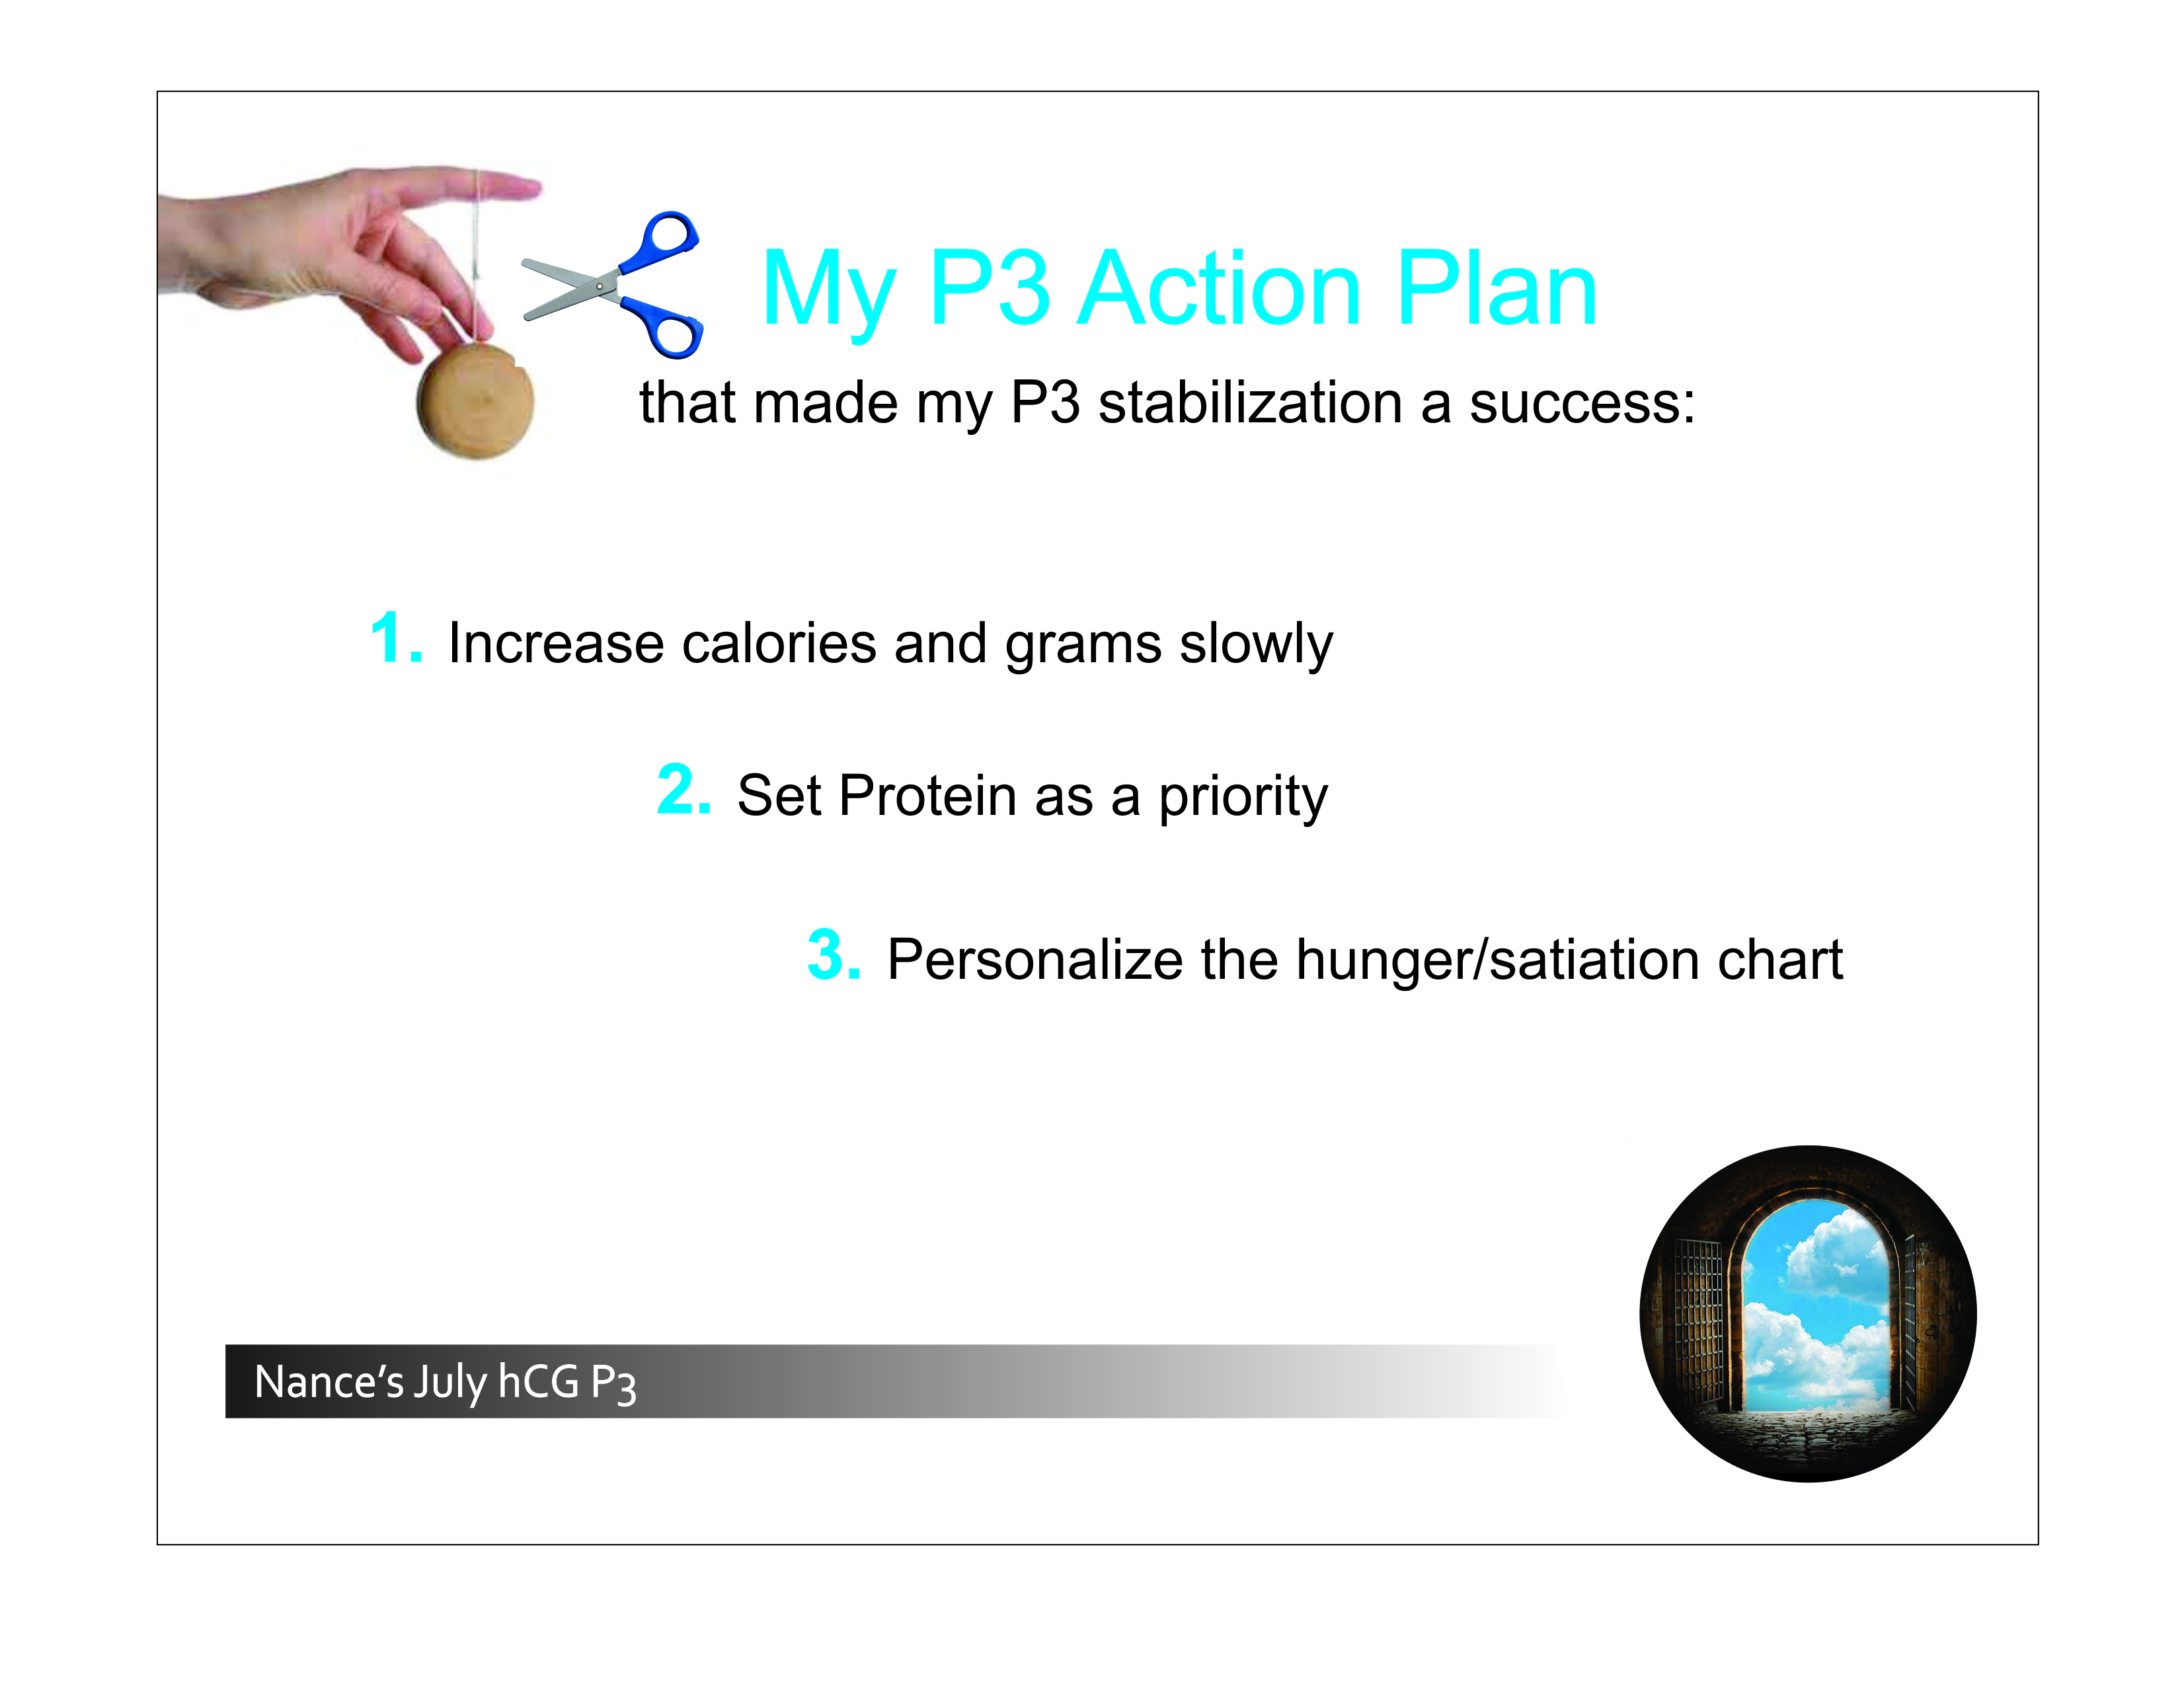 Nance 3 pts Action Plan for Stabilization